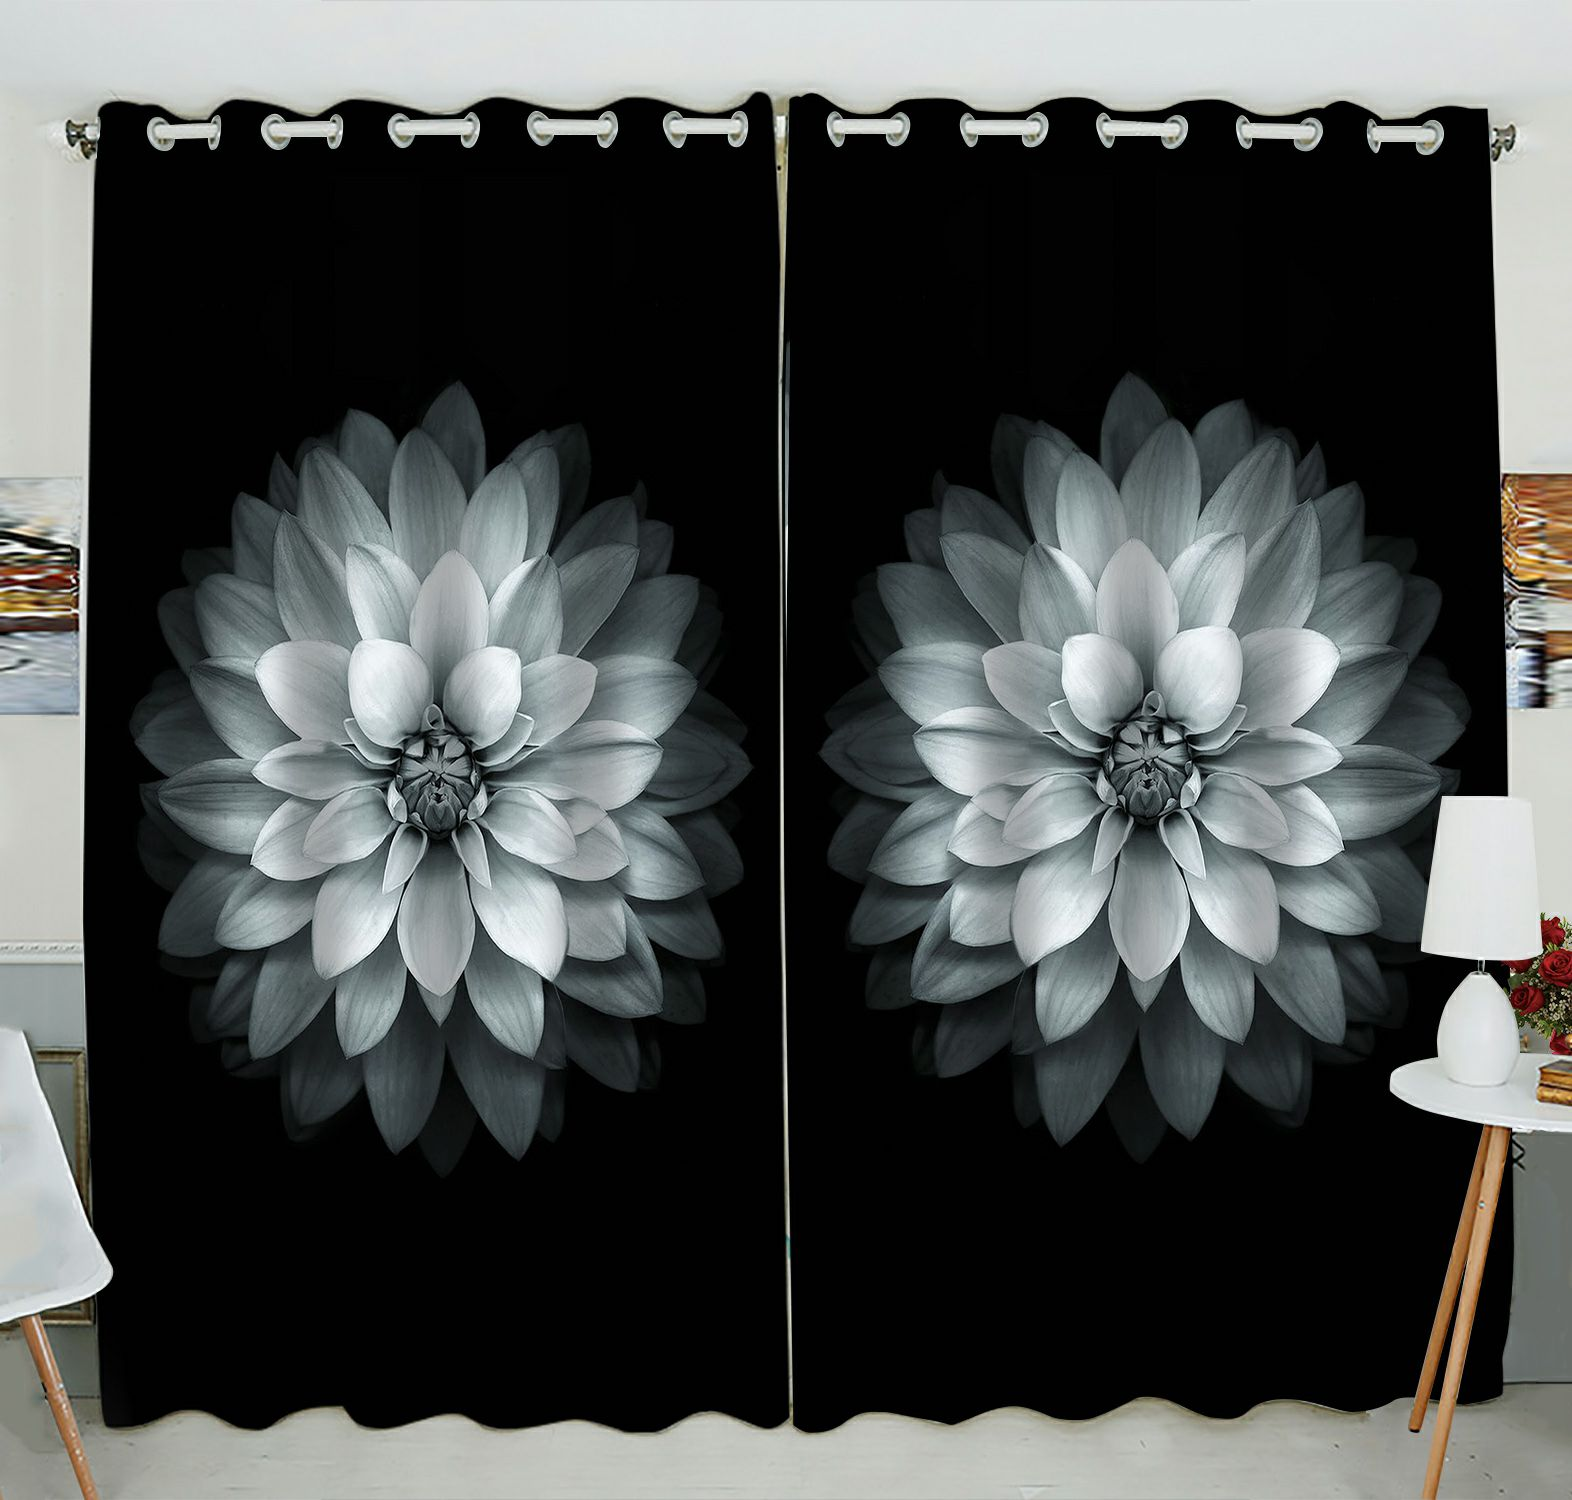 ZKGK Dahlia Floral Pattern Window Curtain Drapery/Panels/Treatment For Living Room Bedroom Kids Rooms 52x84 inches Two Panel